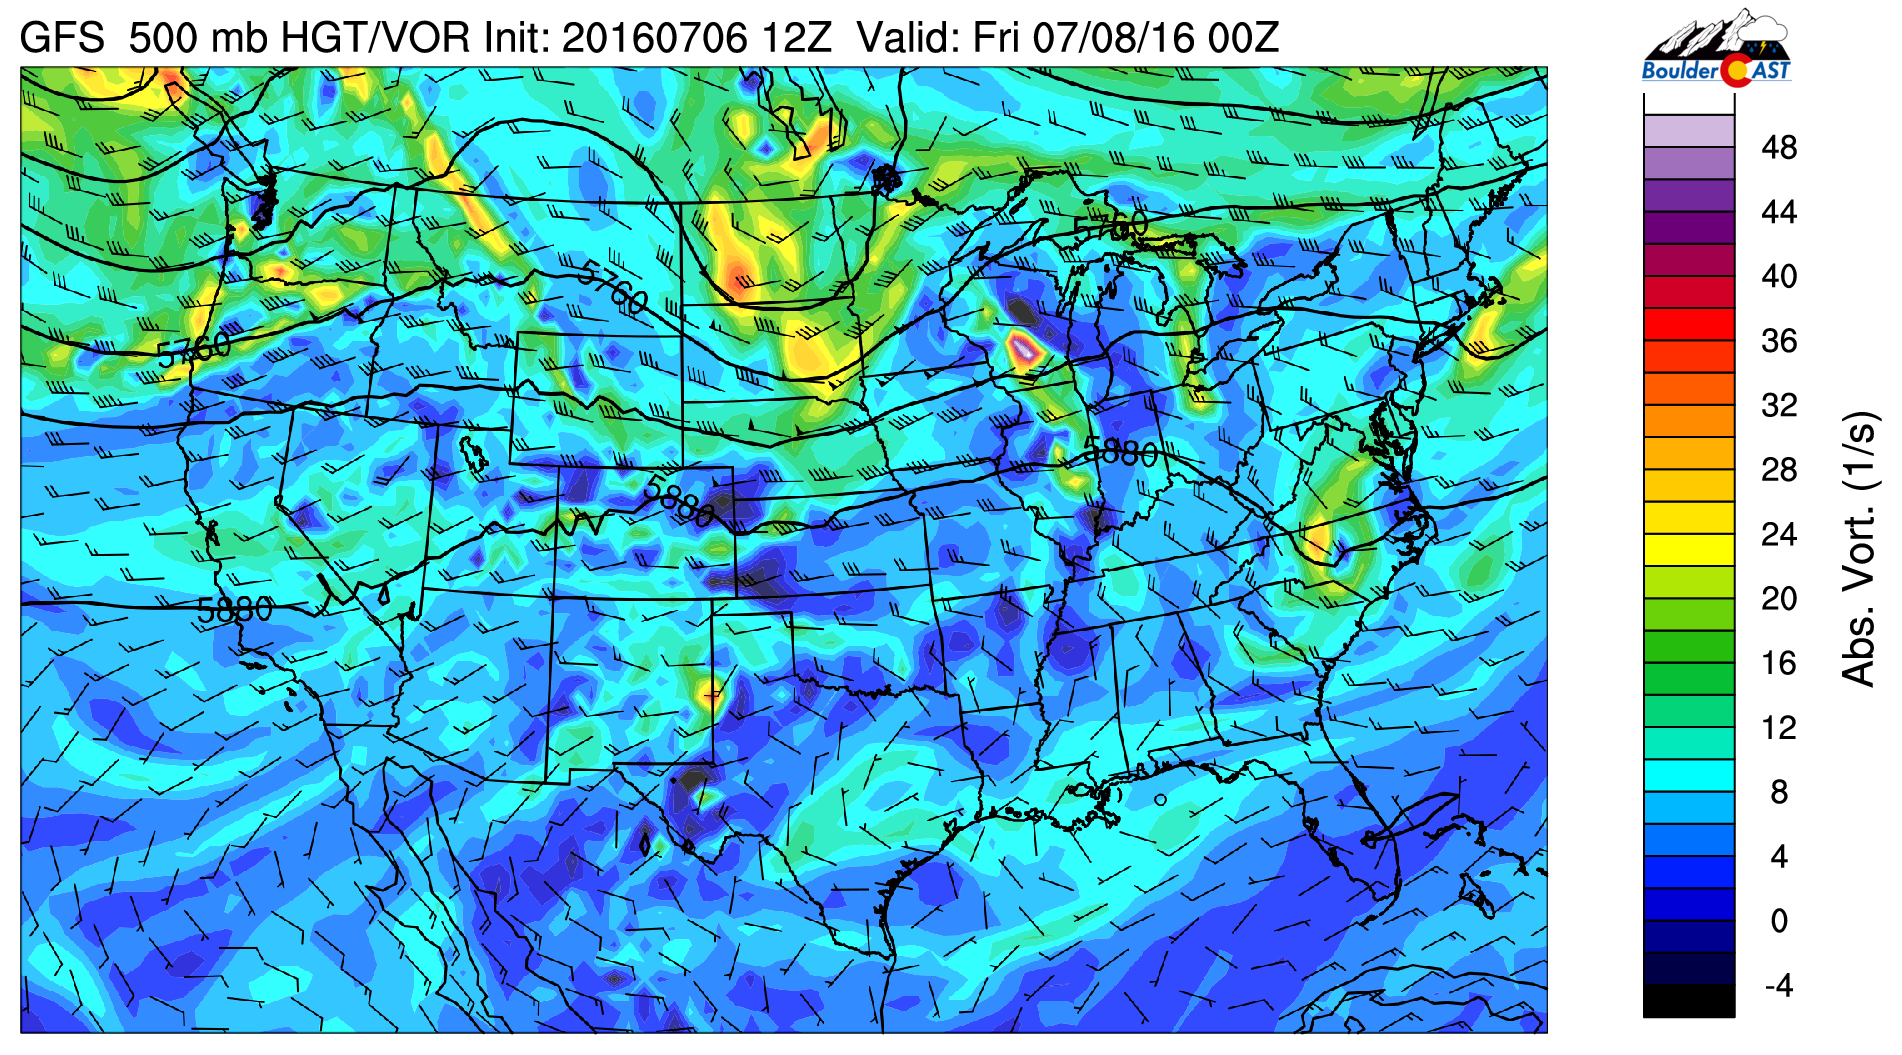 GFS 500mb vorticity for this afternoon